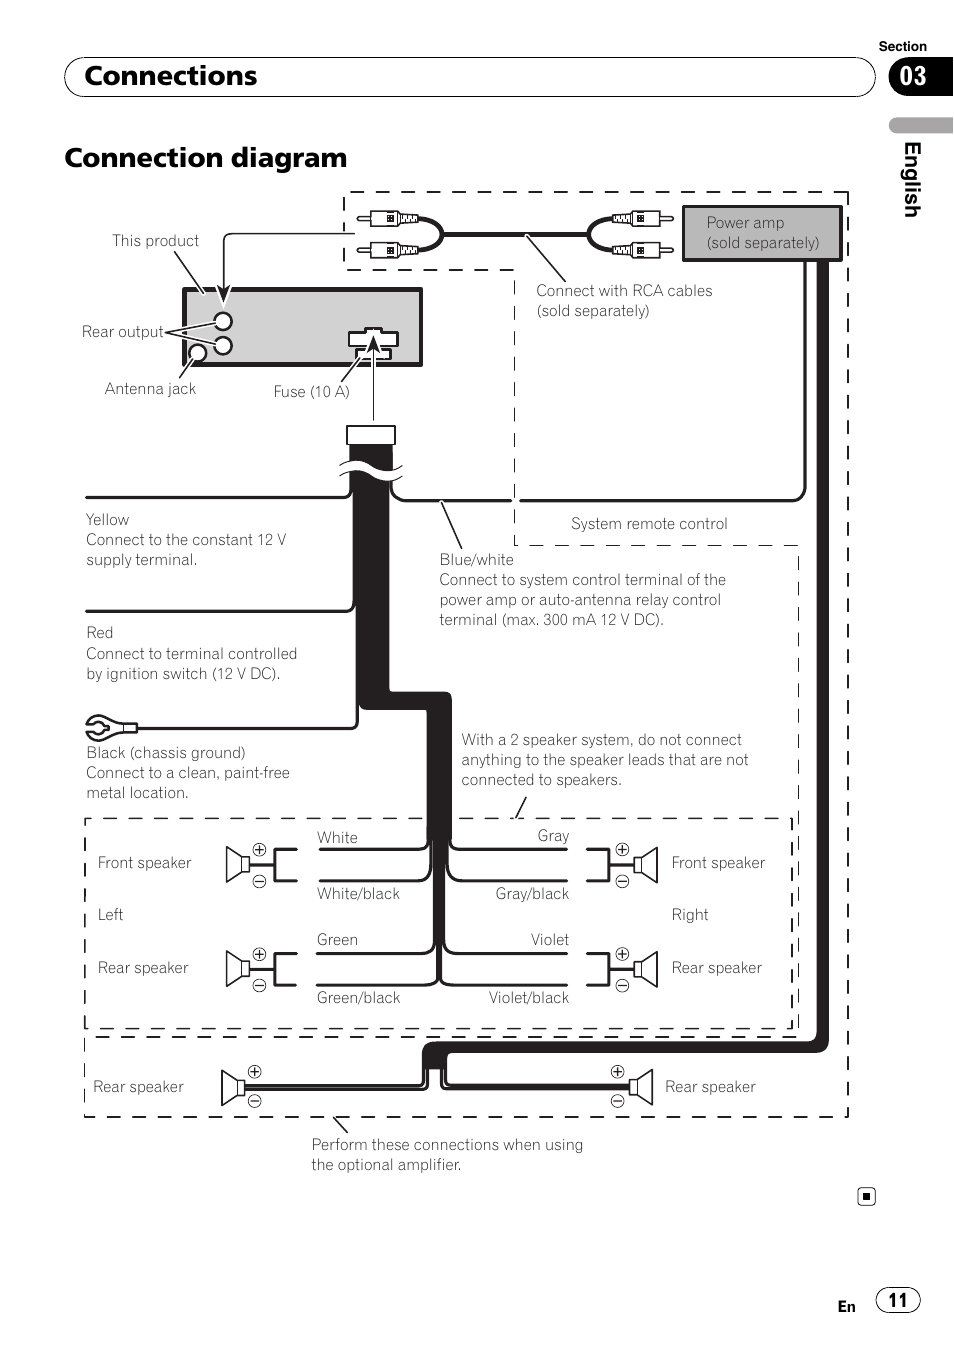 pioneer deh 1200mp wiring diagram 2 treadmill motor testing procedures connection connections english user manual page 11 52